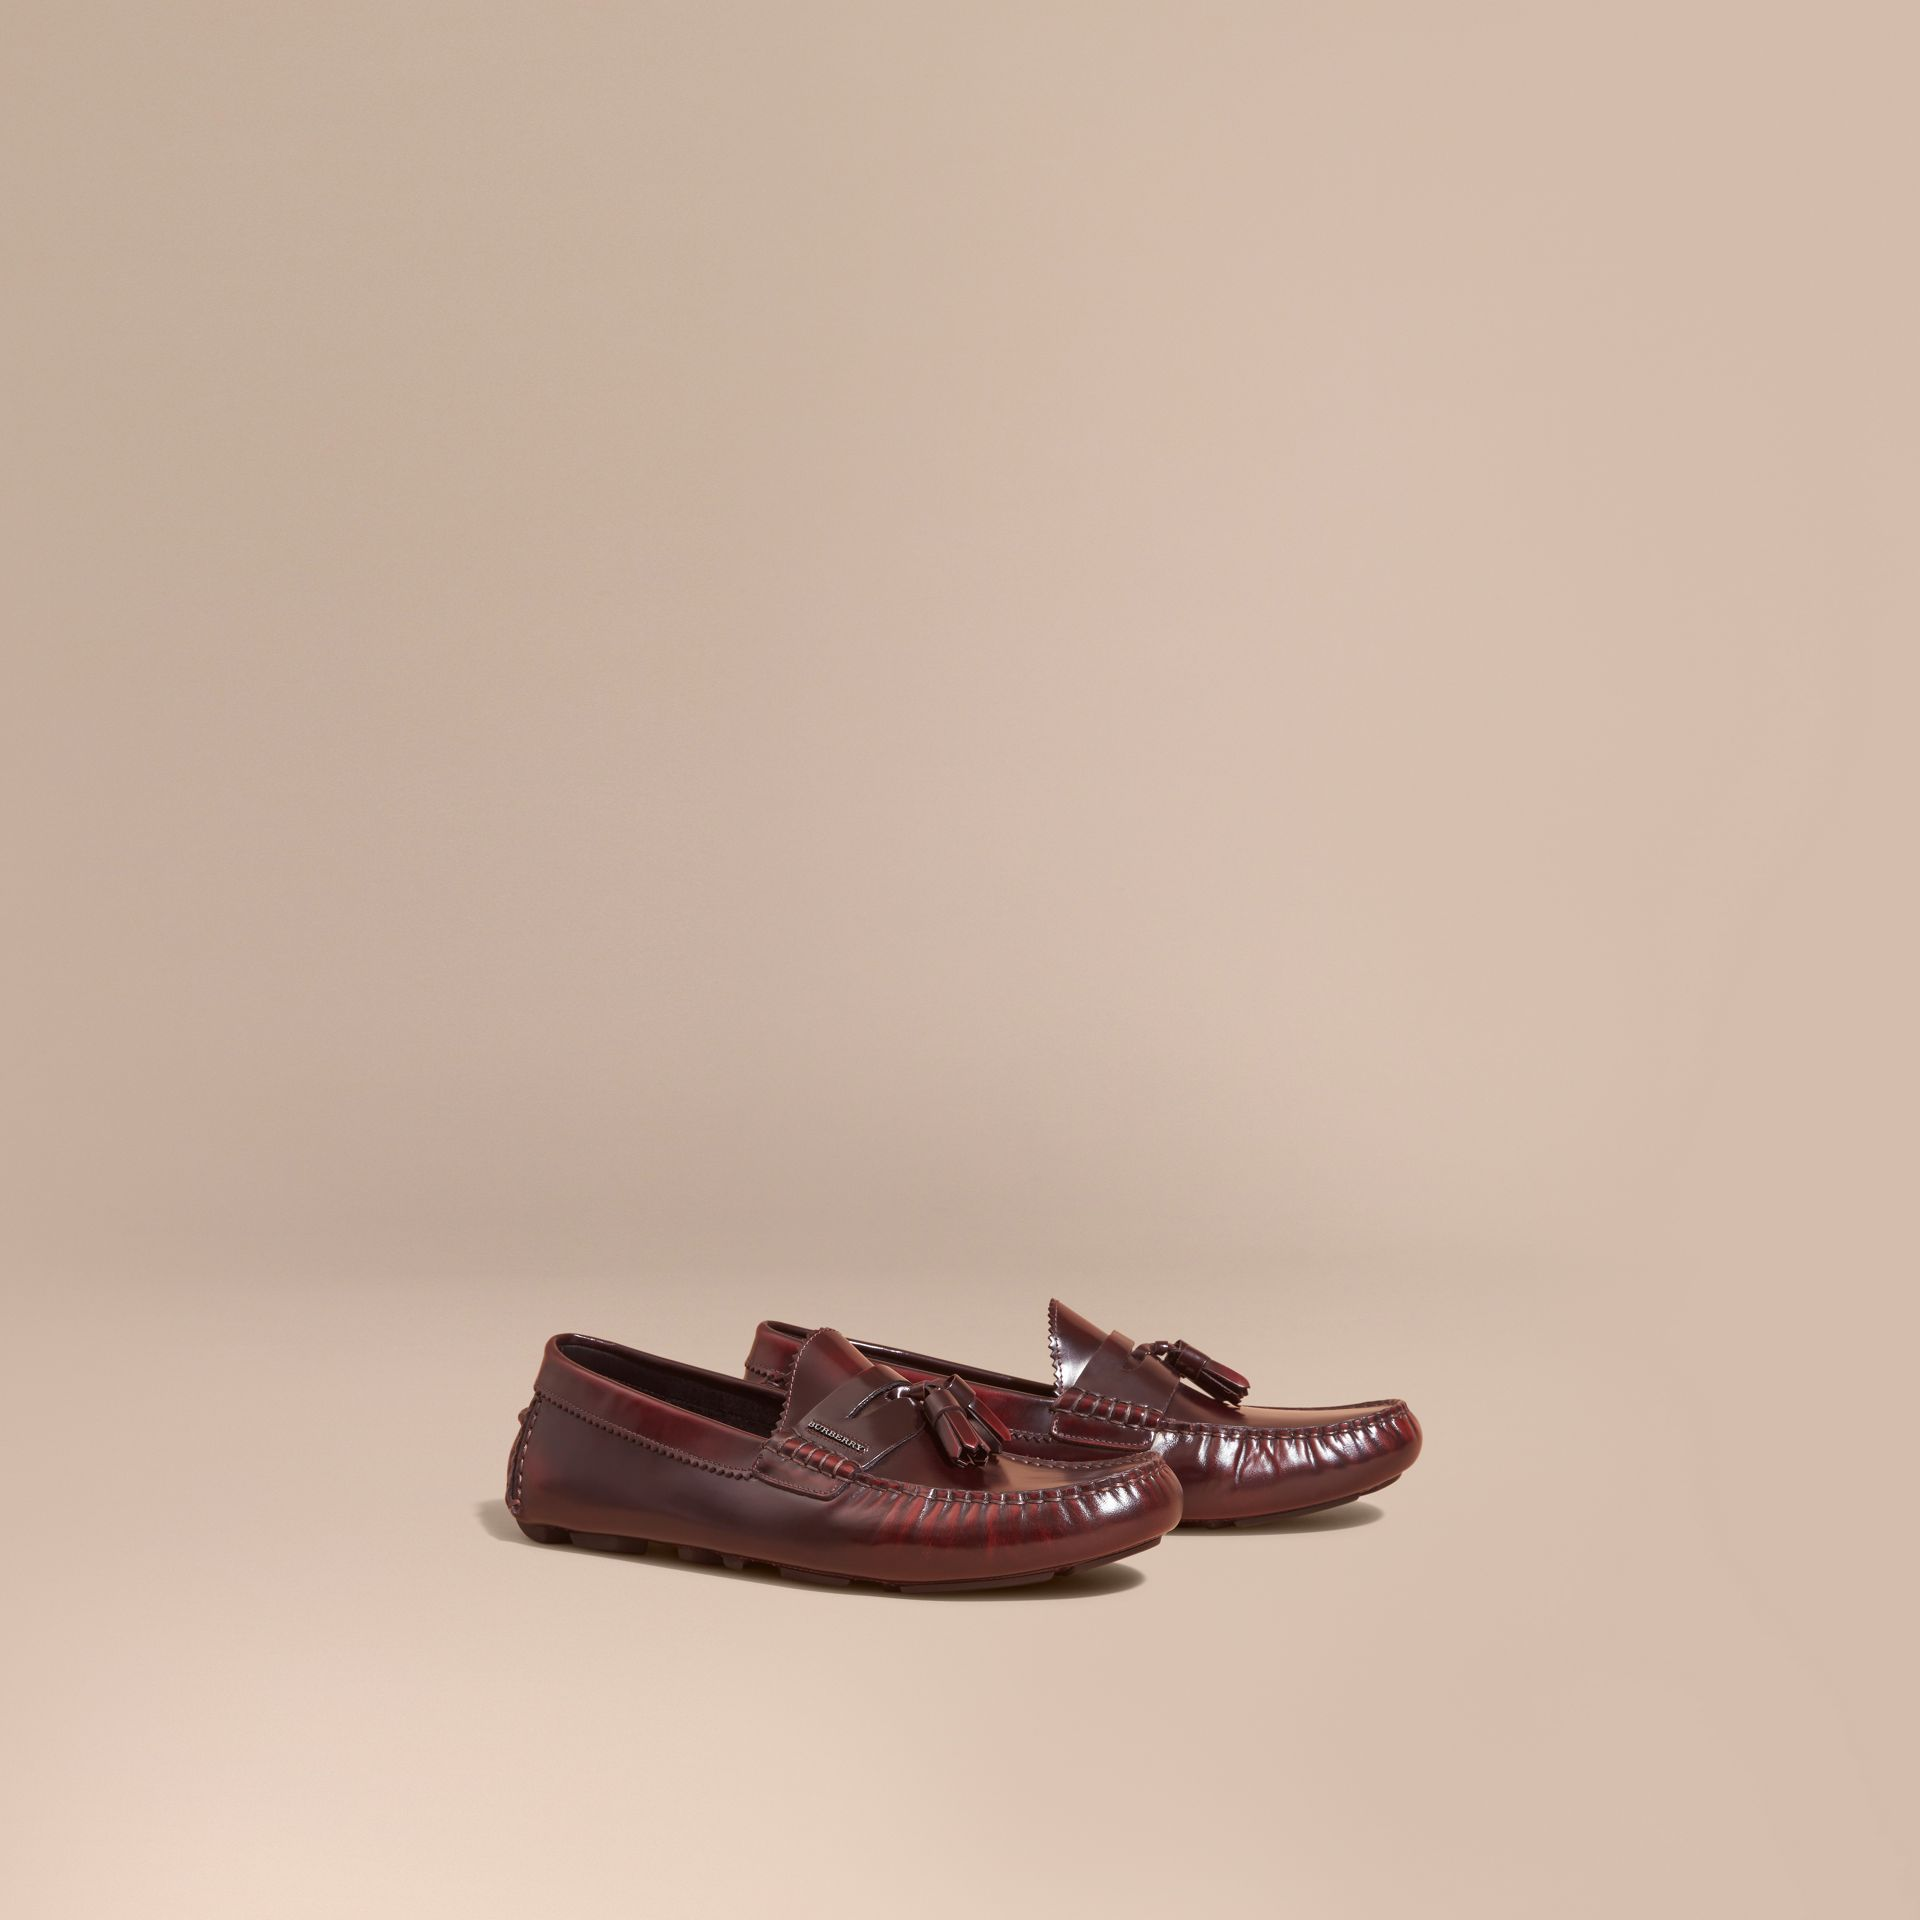 Tasselled Polished Leather Loafers in Bordeaux - gallery image 1